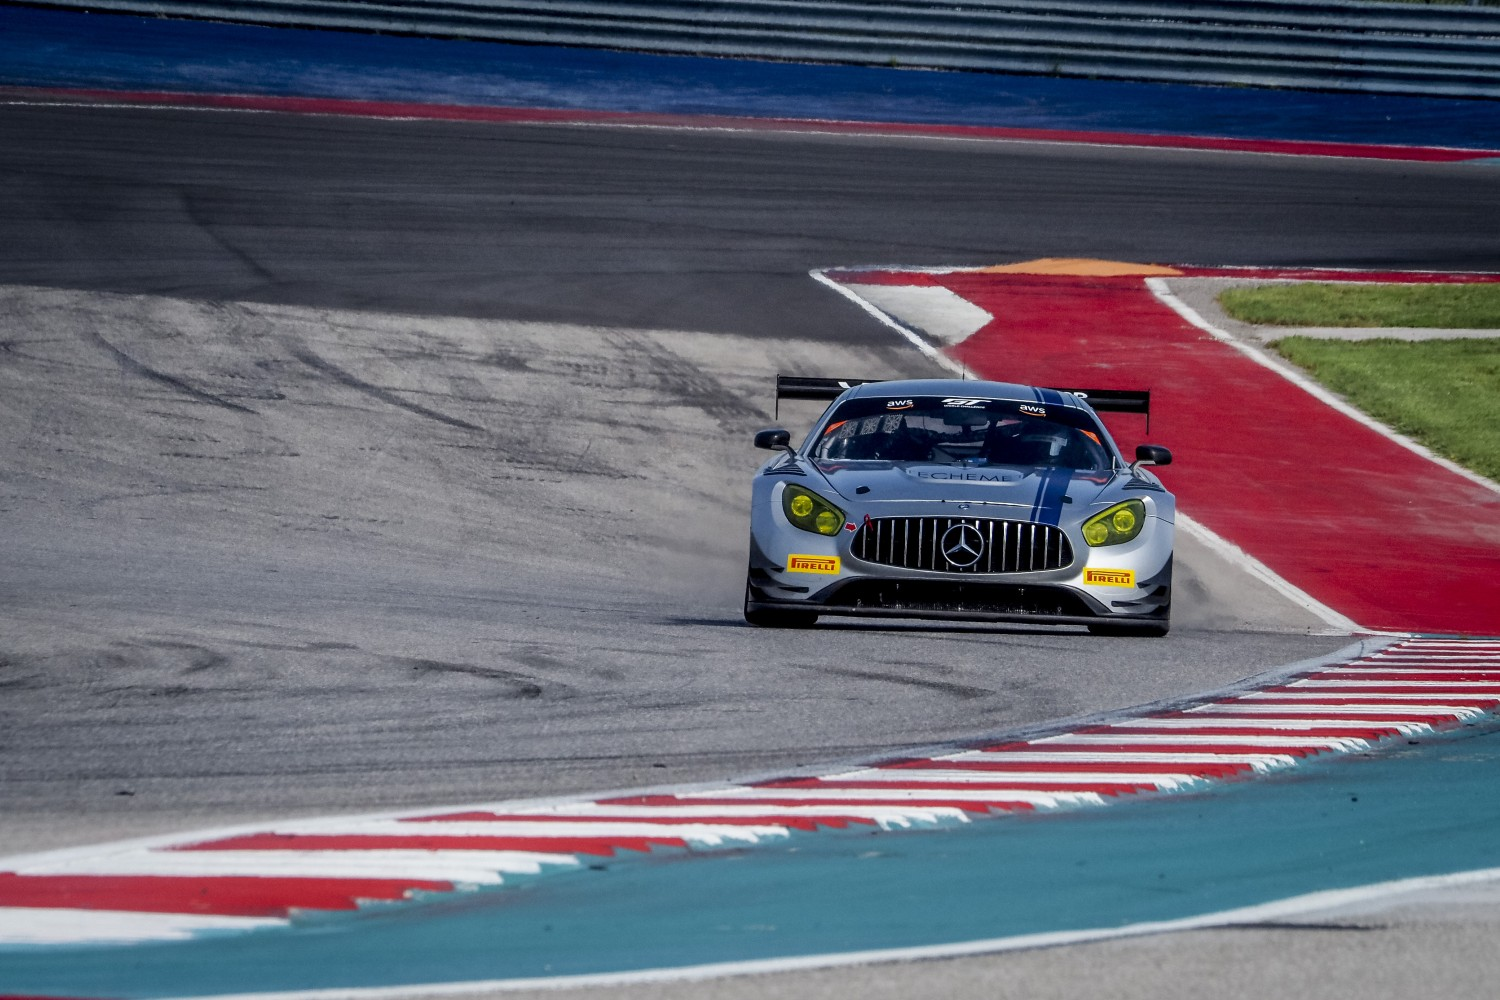 #33 Mercedes-AMG GT3 of Alec Udell and Russell Ward, Winward Racing, GT3 Pro-Am, SRO America, Circuit of the Americas, Austin TX, September 2020.  | Brian Cleary/SRO